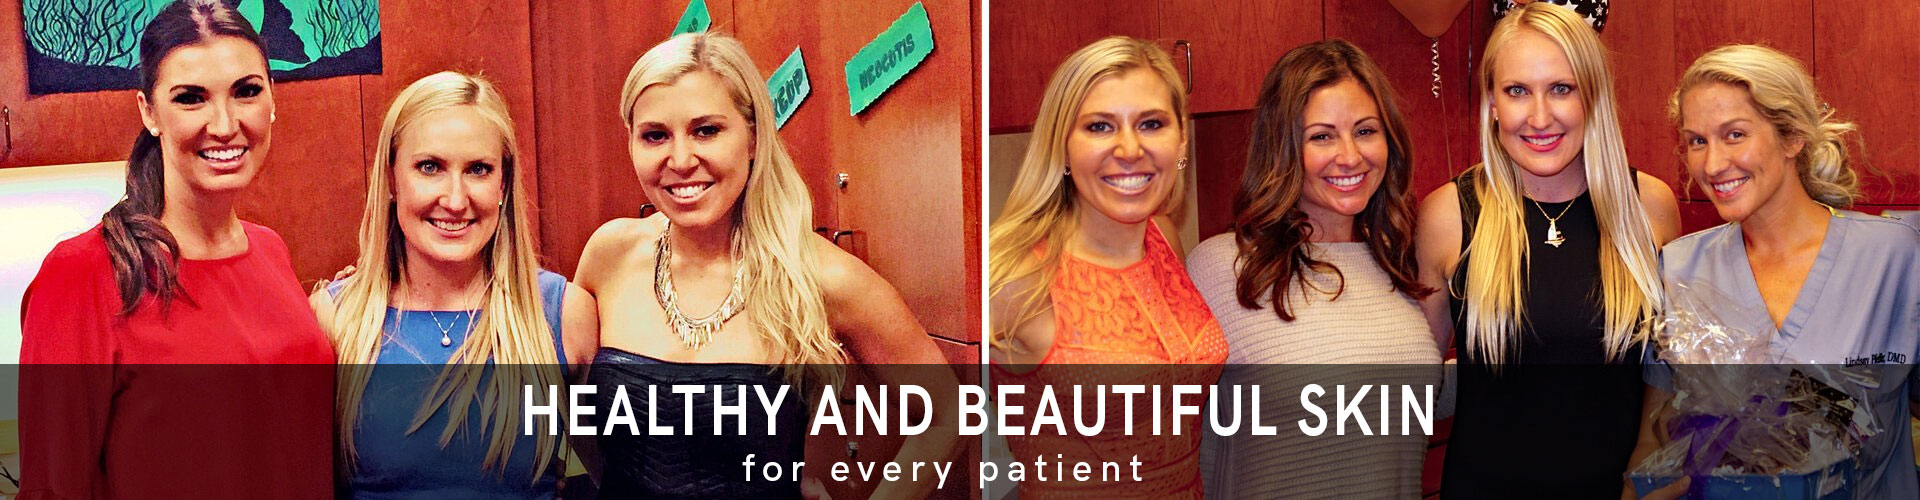 Healthy and Beautiful Skinfor every patient